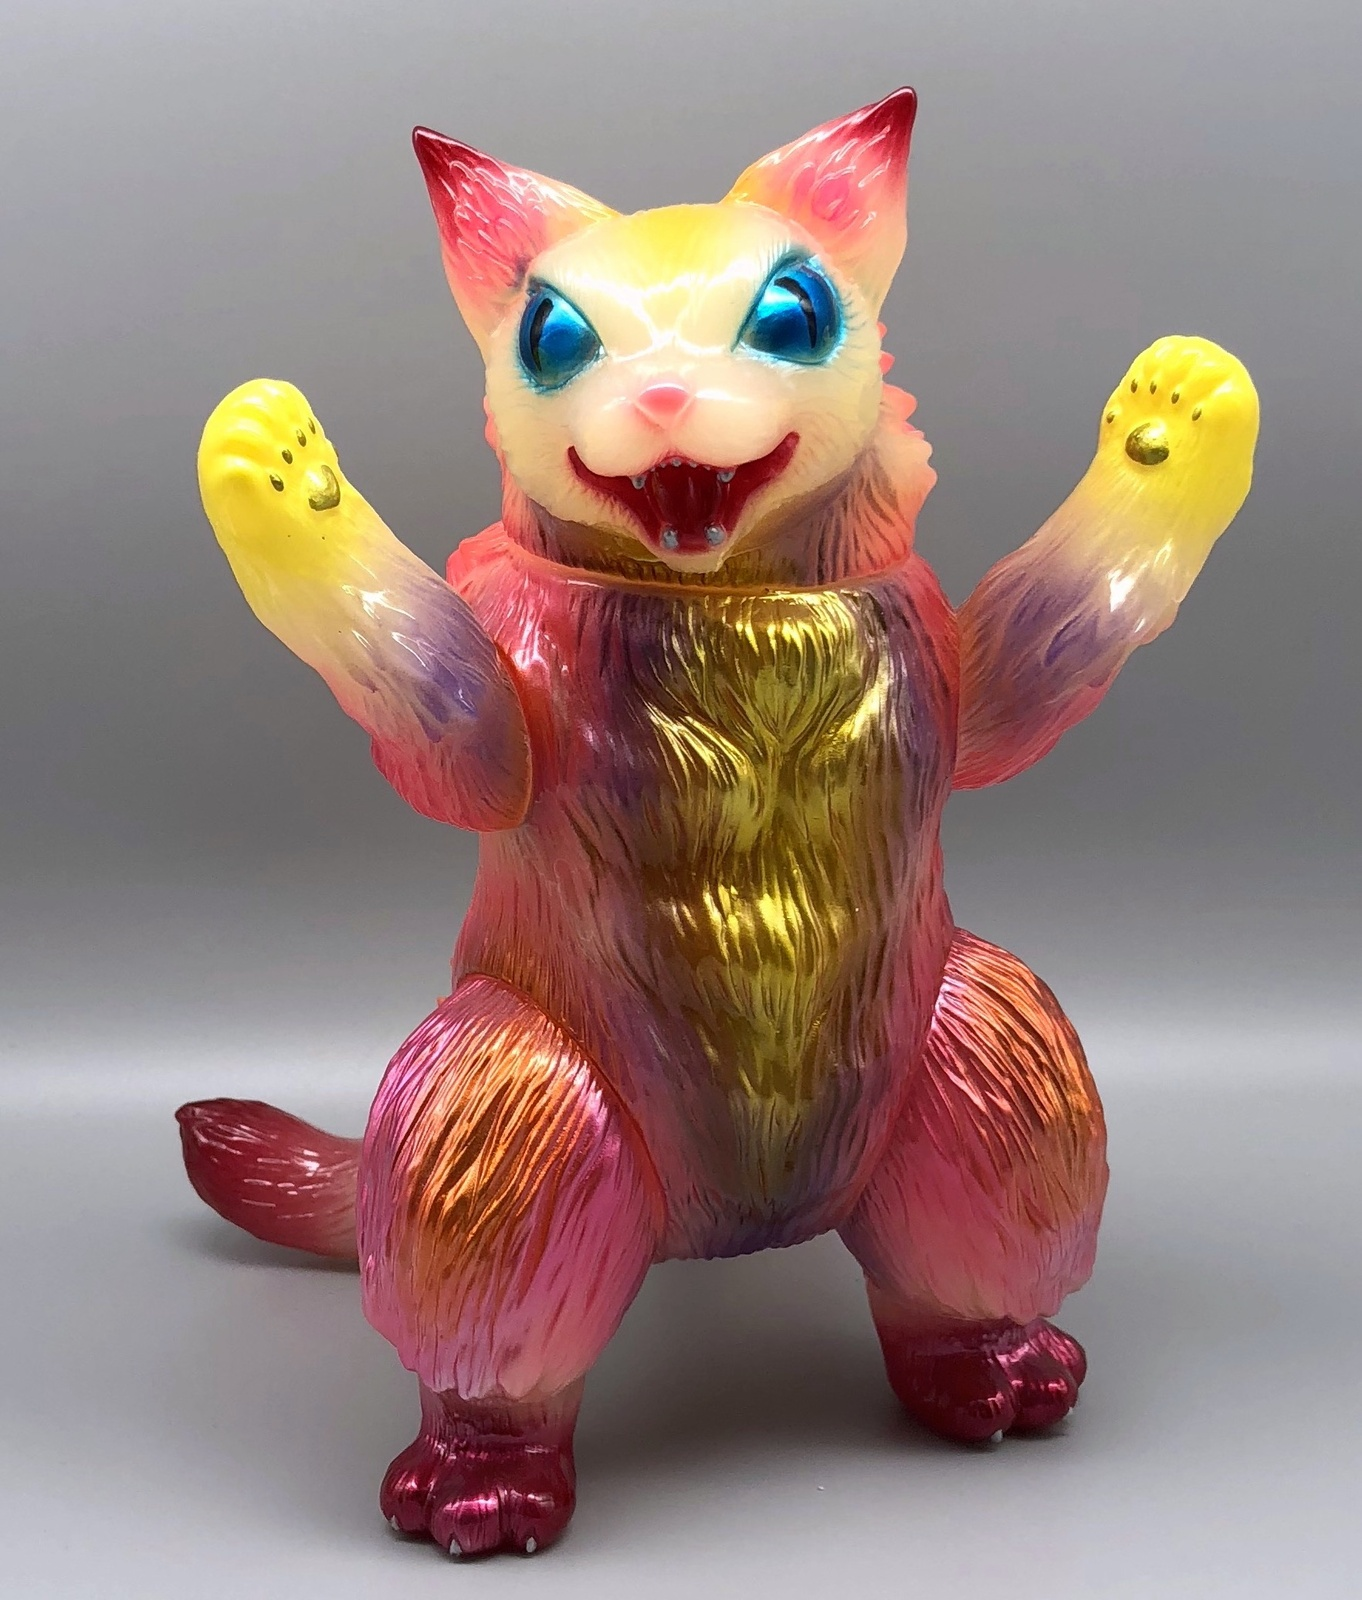 MaxToy Custom Joyous King Negora - Beautiful!